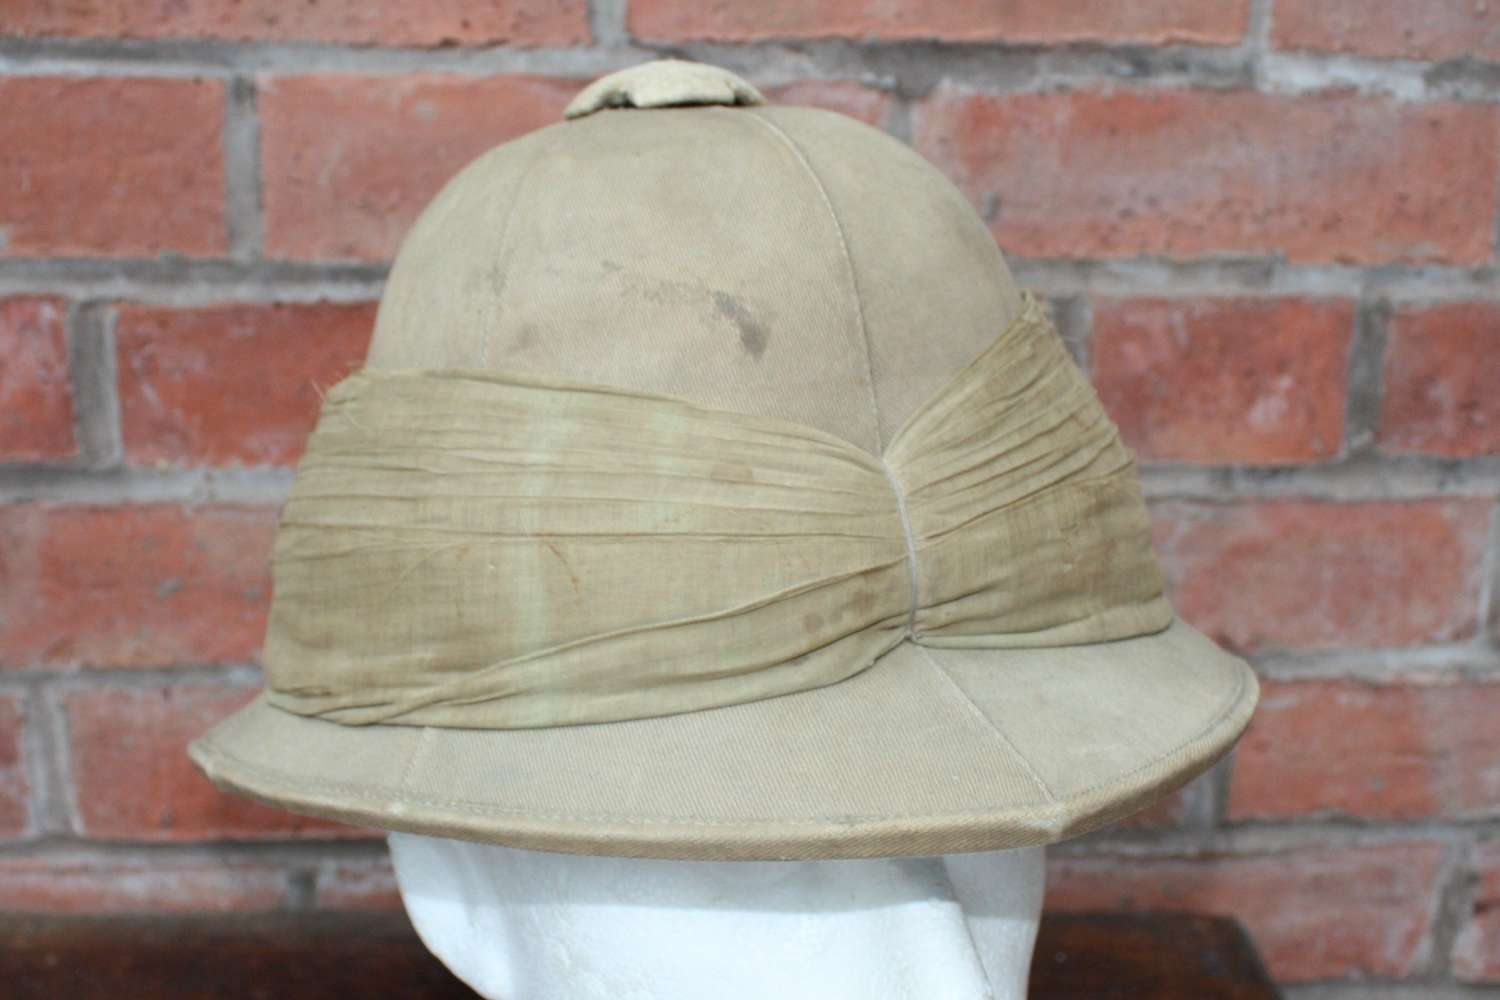 POST WW1 BRITISH ARMY OTHER RANKS PITH HELMET